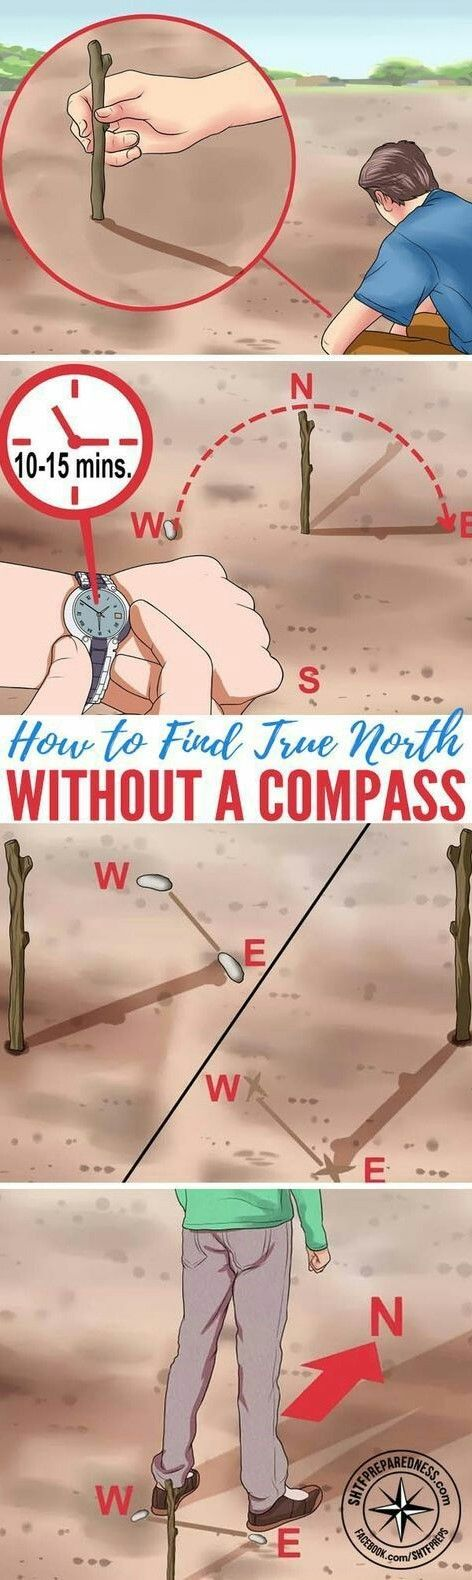 How to Find True North Without a Compass — Basic survival skills are essential for anyone living off the grid in the wilderness, whether it's by choice or in a SHTF situation. When you need to navigate without landmarks, technology, or compass, how to find true north. Survival tips. Outdoors, hiking, camping, backpacking, navigation. Essentials.